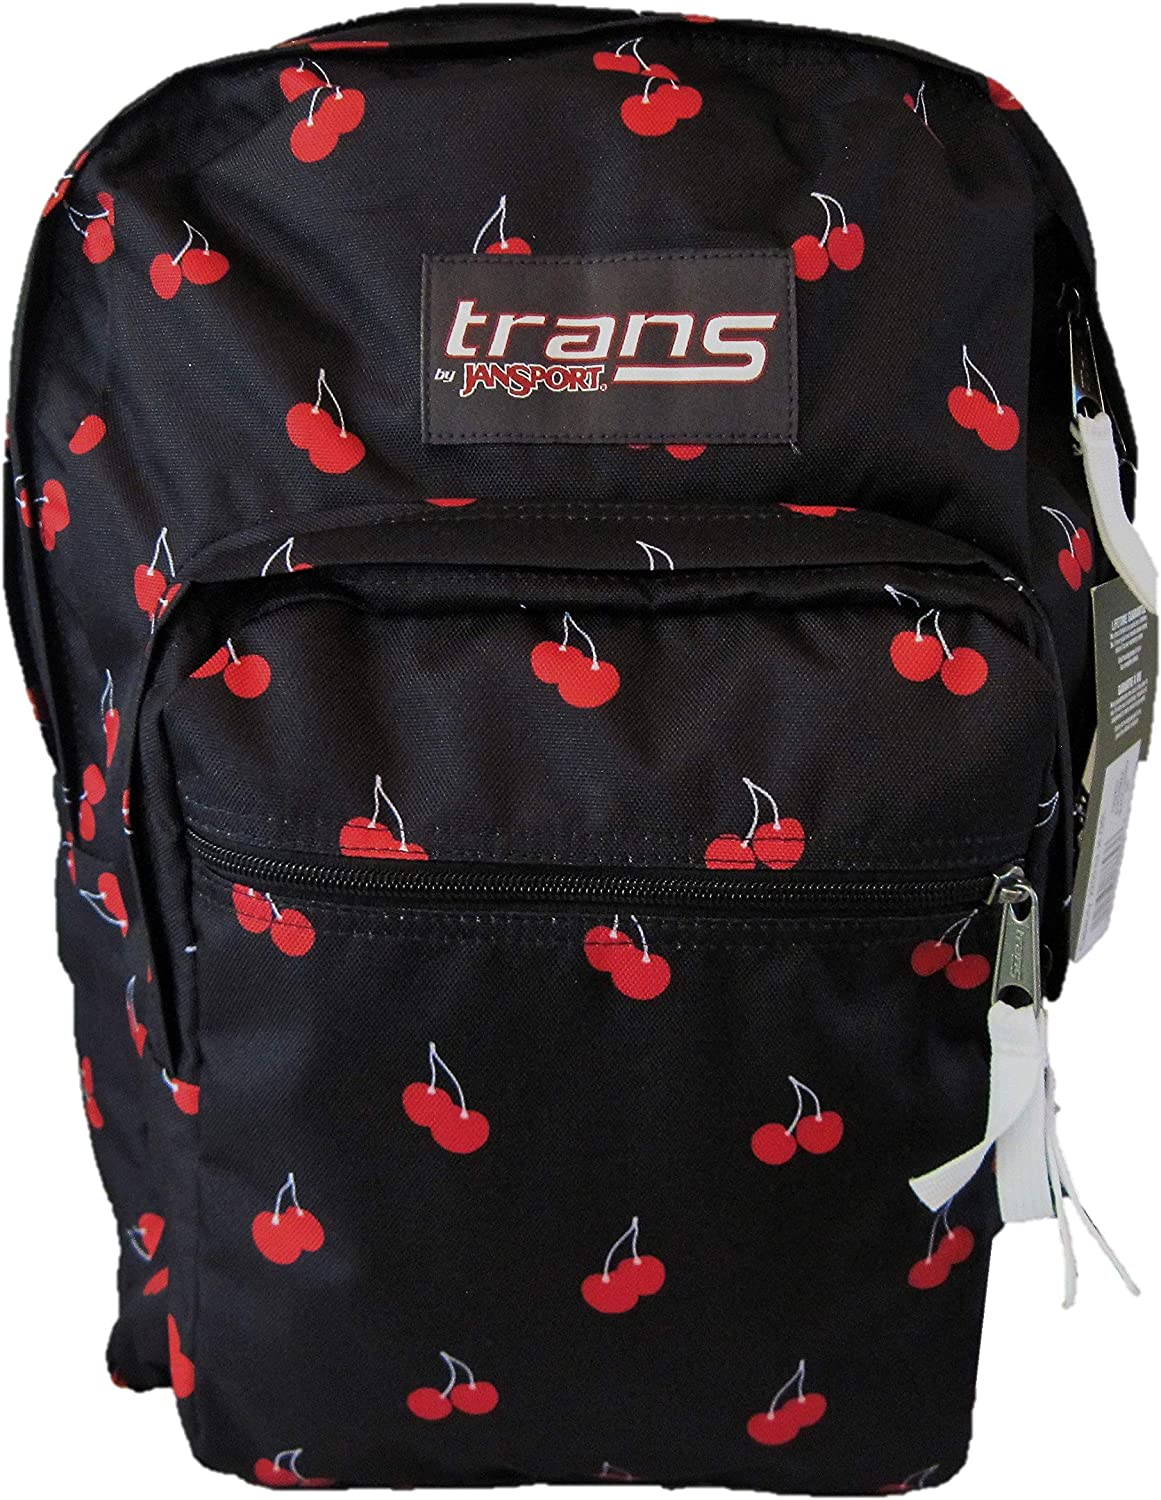 Trans by Jansport Black Cherry Supermax Backpack